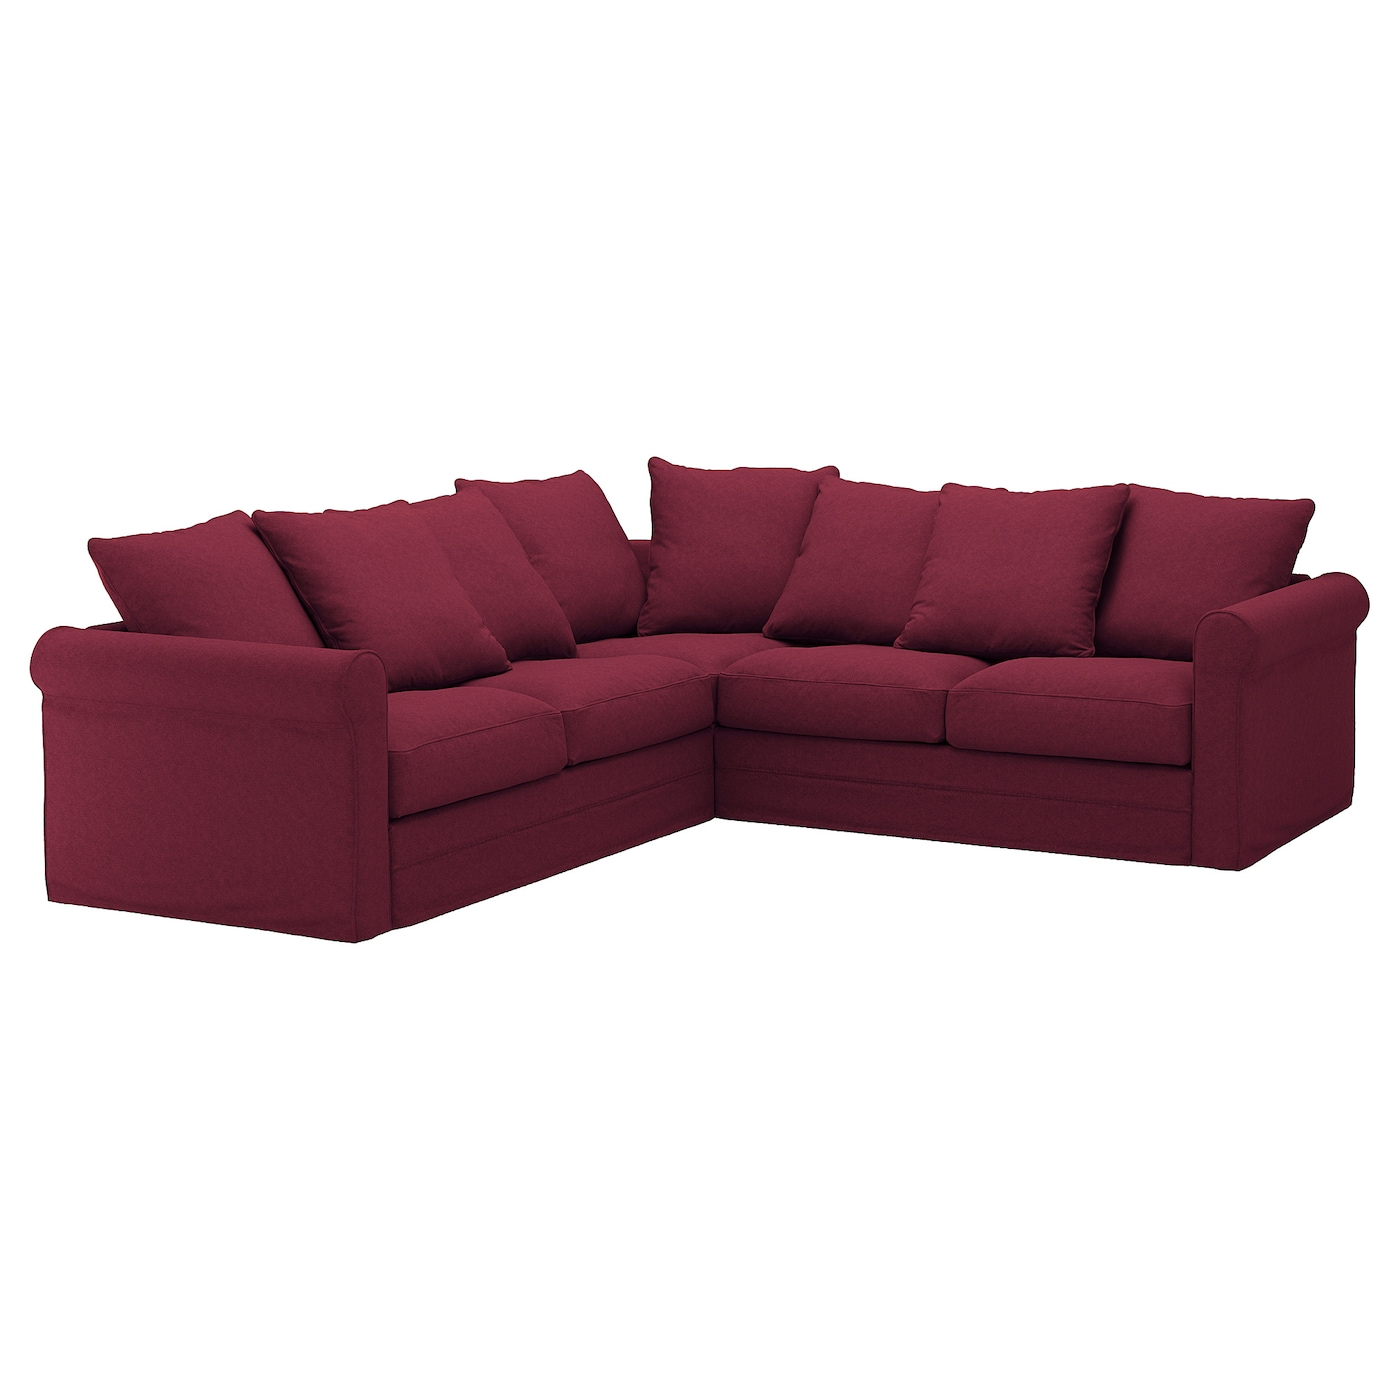 IKEA GRÖNLID Corner Sofa, 4 Seat 10 Year Guarantee. Read About The Terms